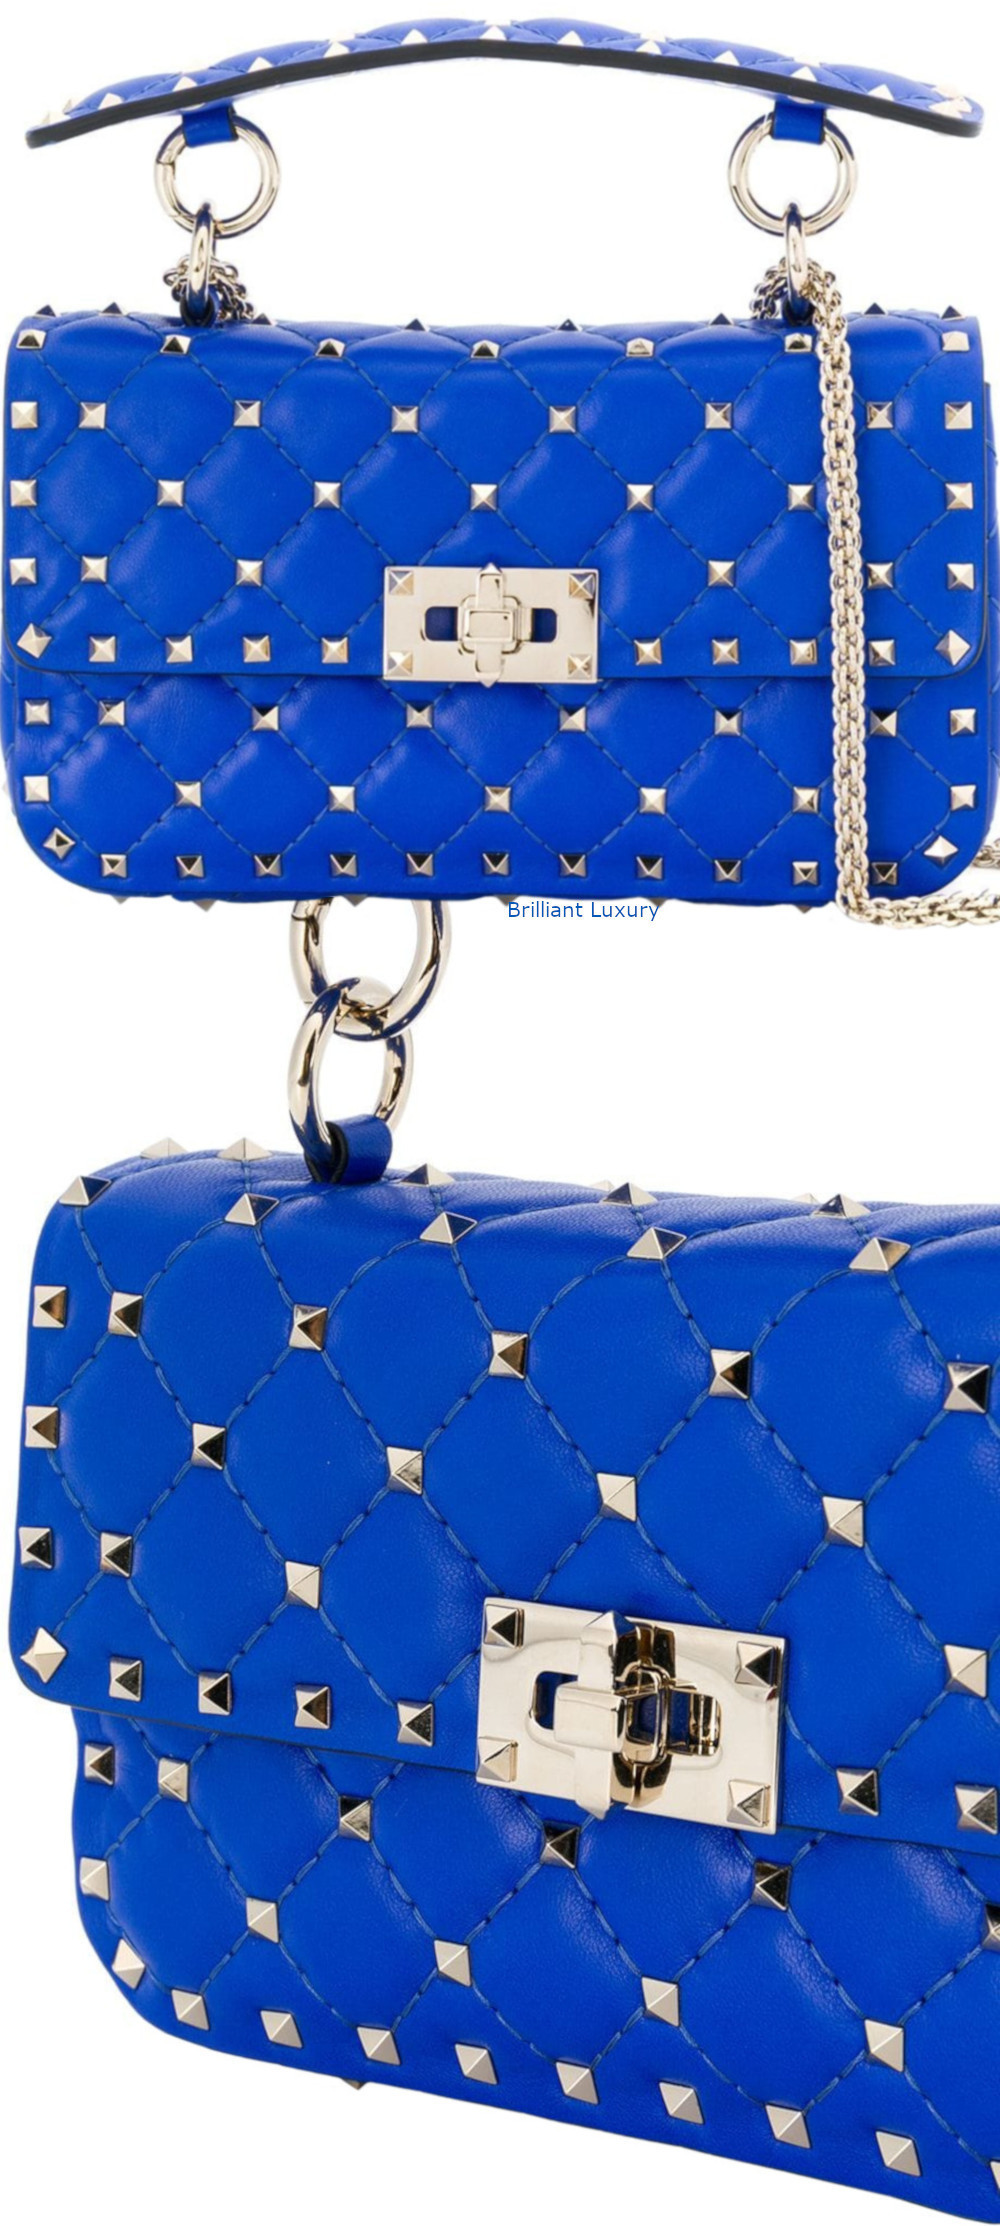 Valentino Garavani Rockstud spike blue crossbody bag